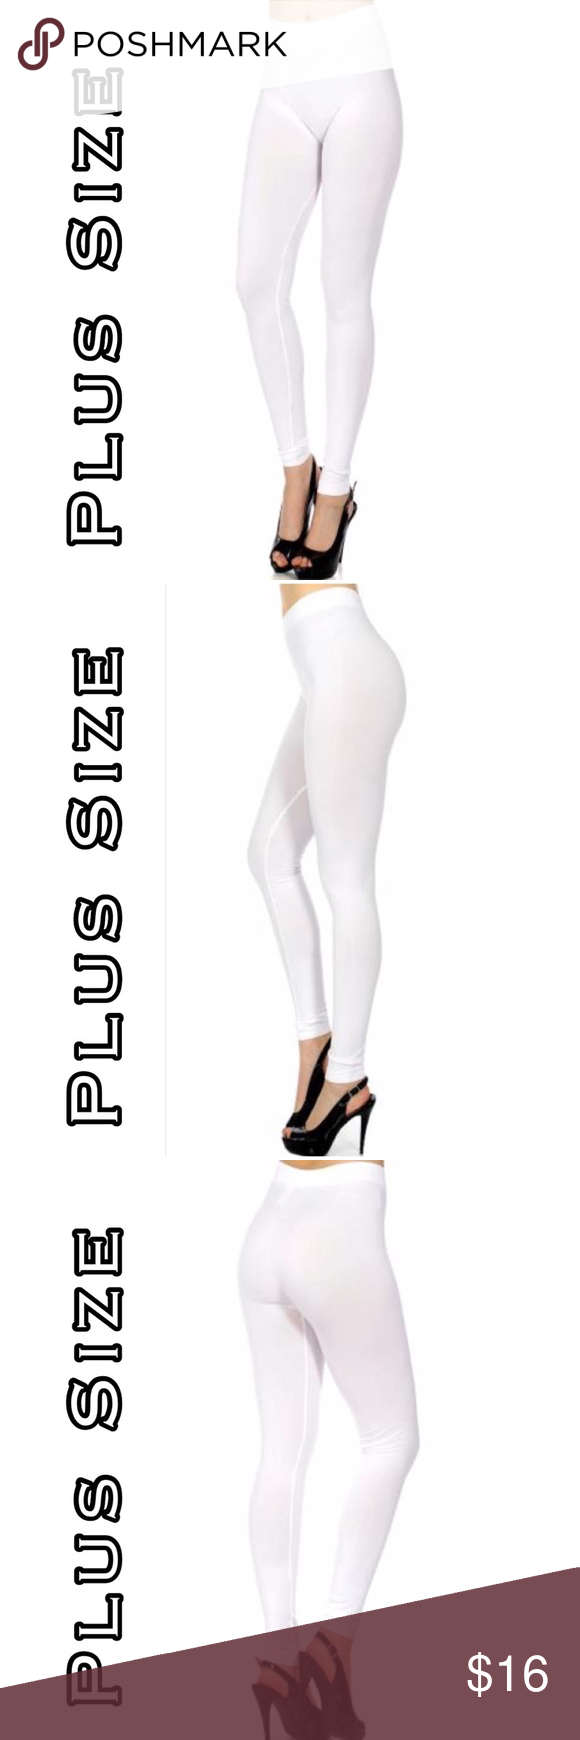 694b1acfc05 White Leggings OS Fits 1X-3X Solid white seamless leggings. Fits 1X-3x. Beauty  Shines On Boutique Pants Leggings